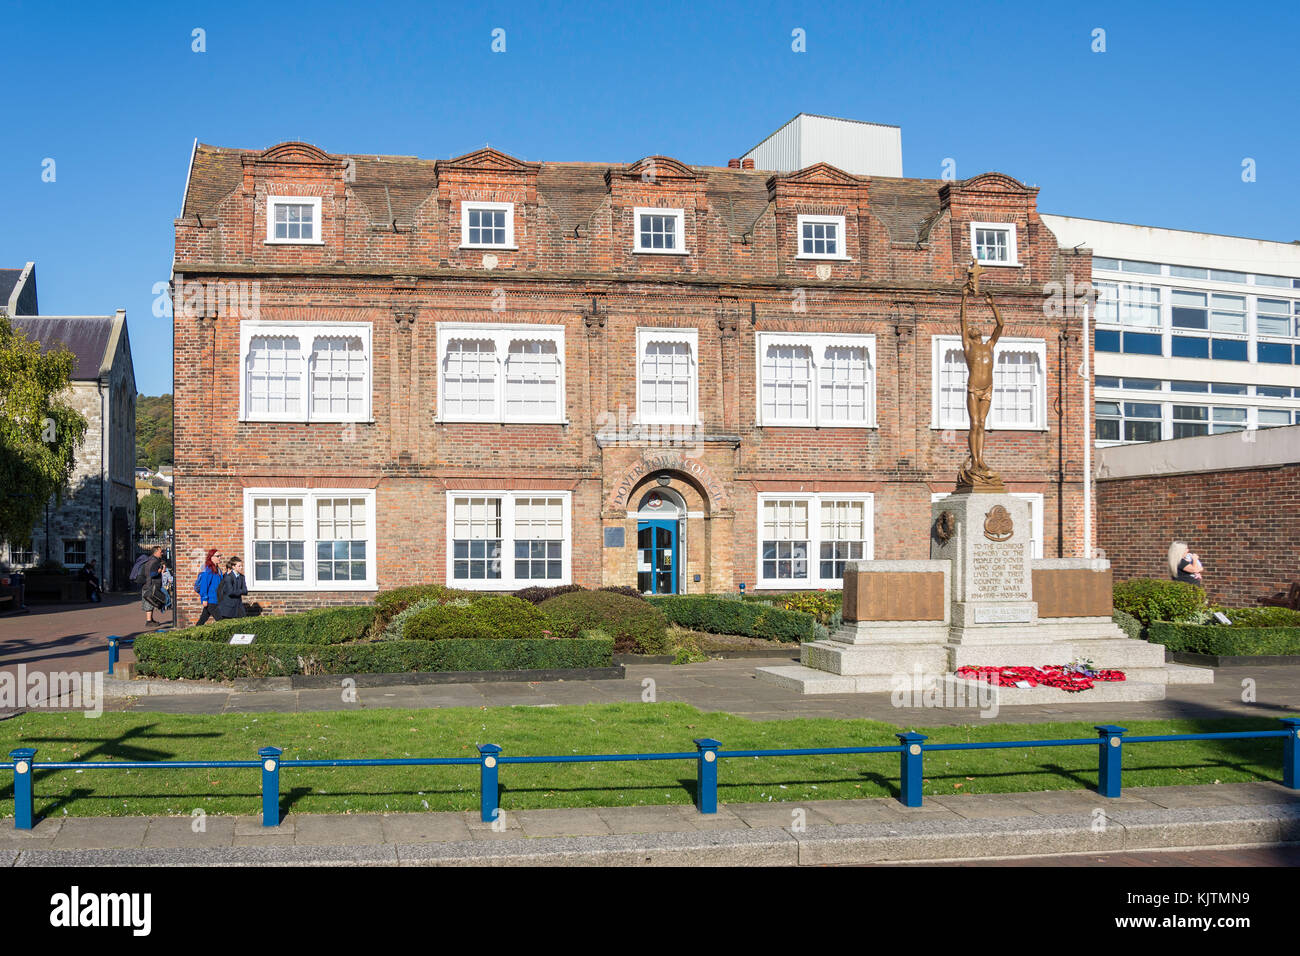 Dover Town Council, Maison Dieu House, Biggin Street, Dover, Kent, England, United Kingdom - Stock Image